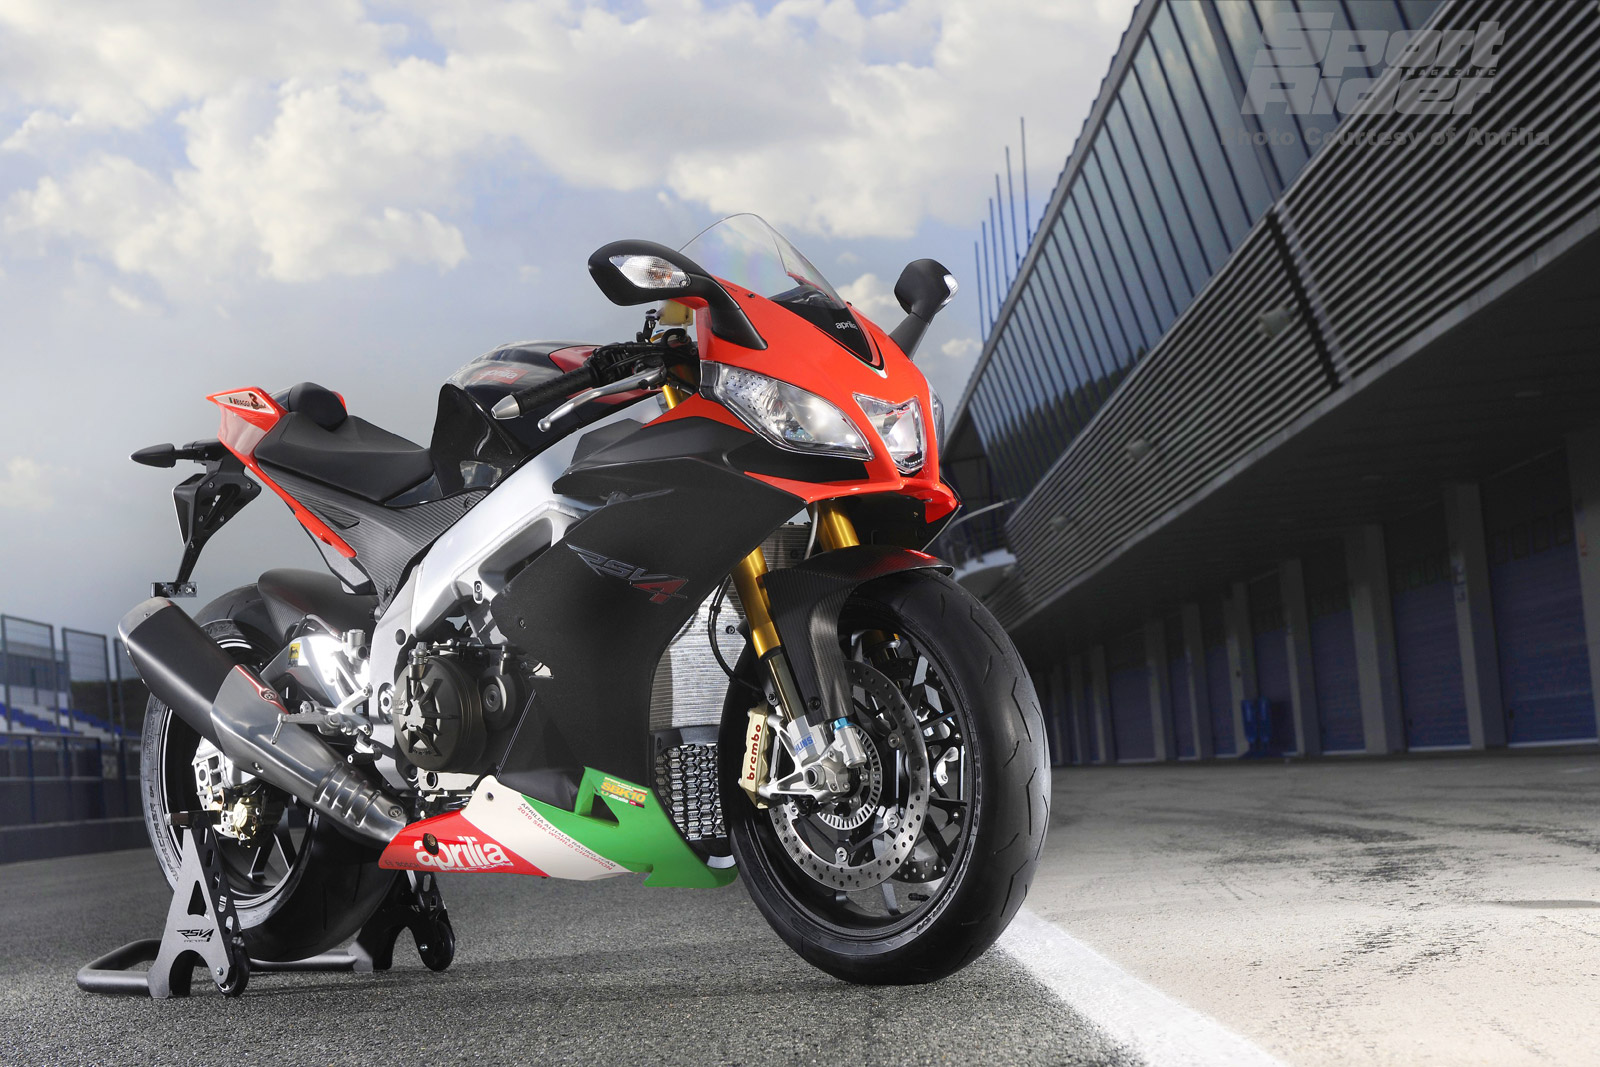 Aprilia Wallpapers 2E6CM2W 4082 Kb   4USkY 1600x1067